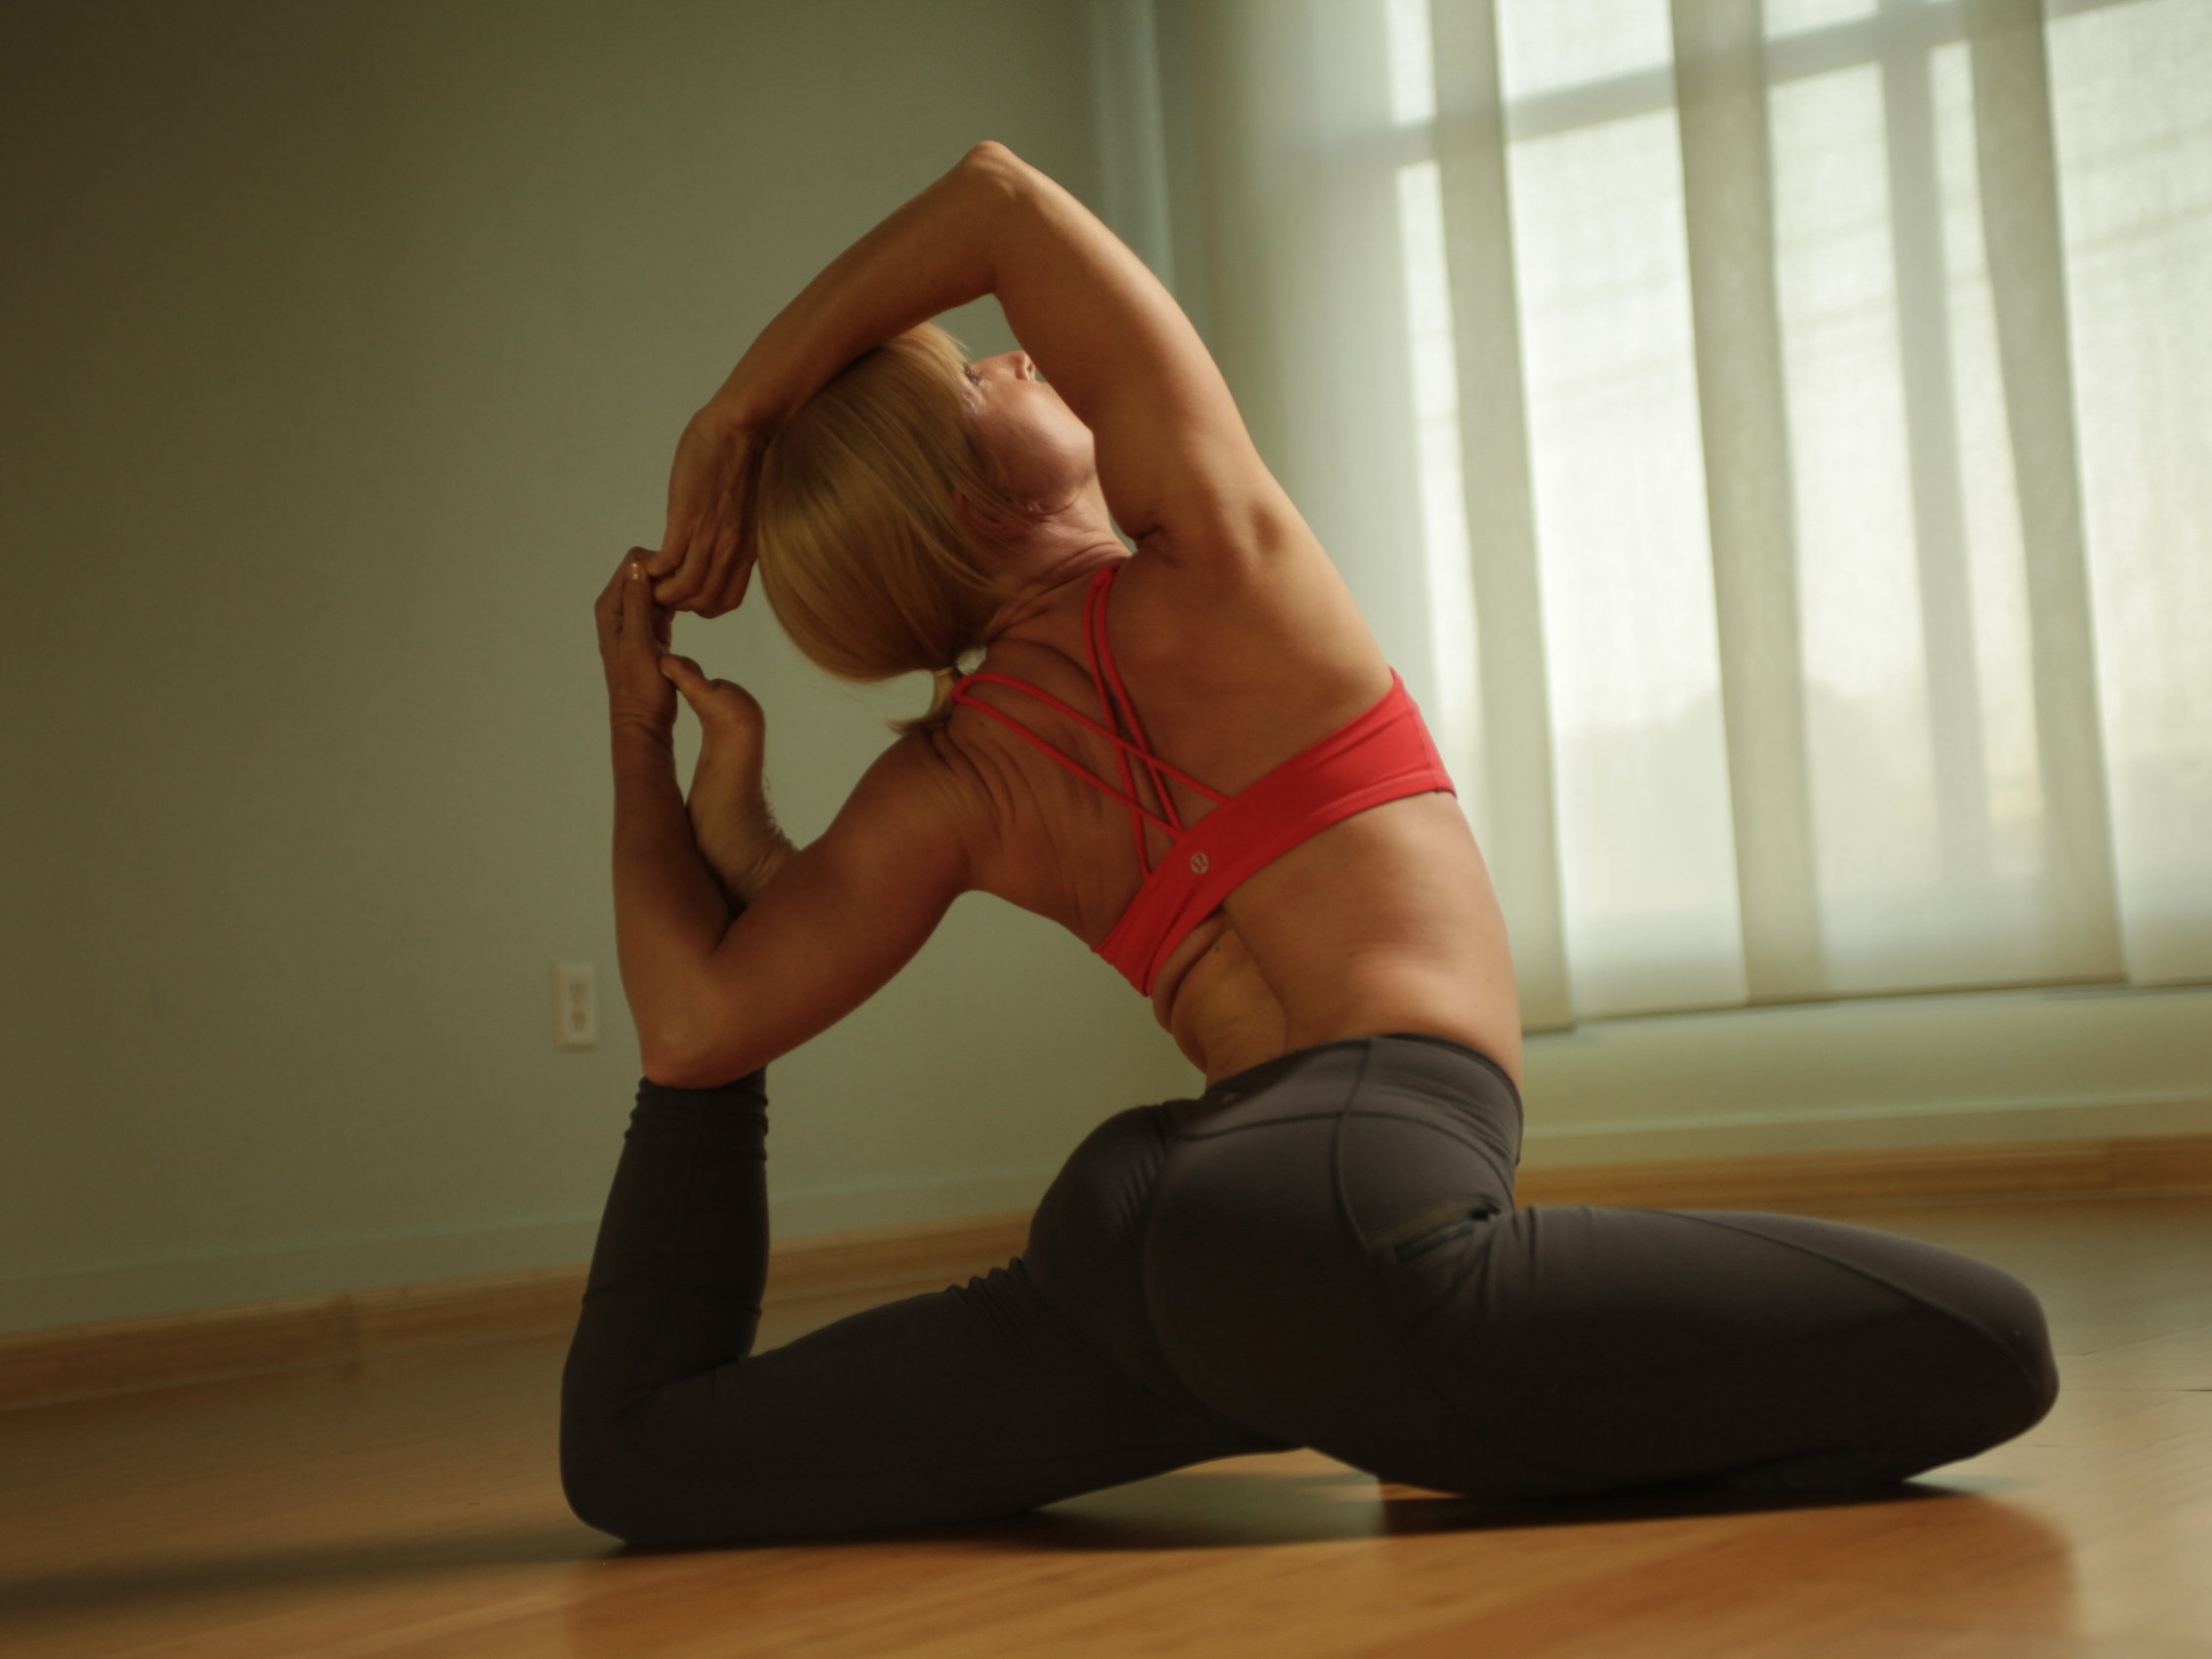 Desirae's Personal Practice - When I only have 45 minutes to practice, this is it. Come flow with me in this Power Vinyasa personal practice.Length: 45 minutesCost: $7.99